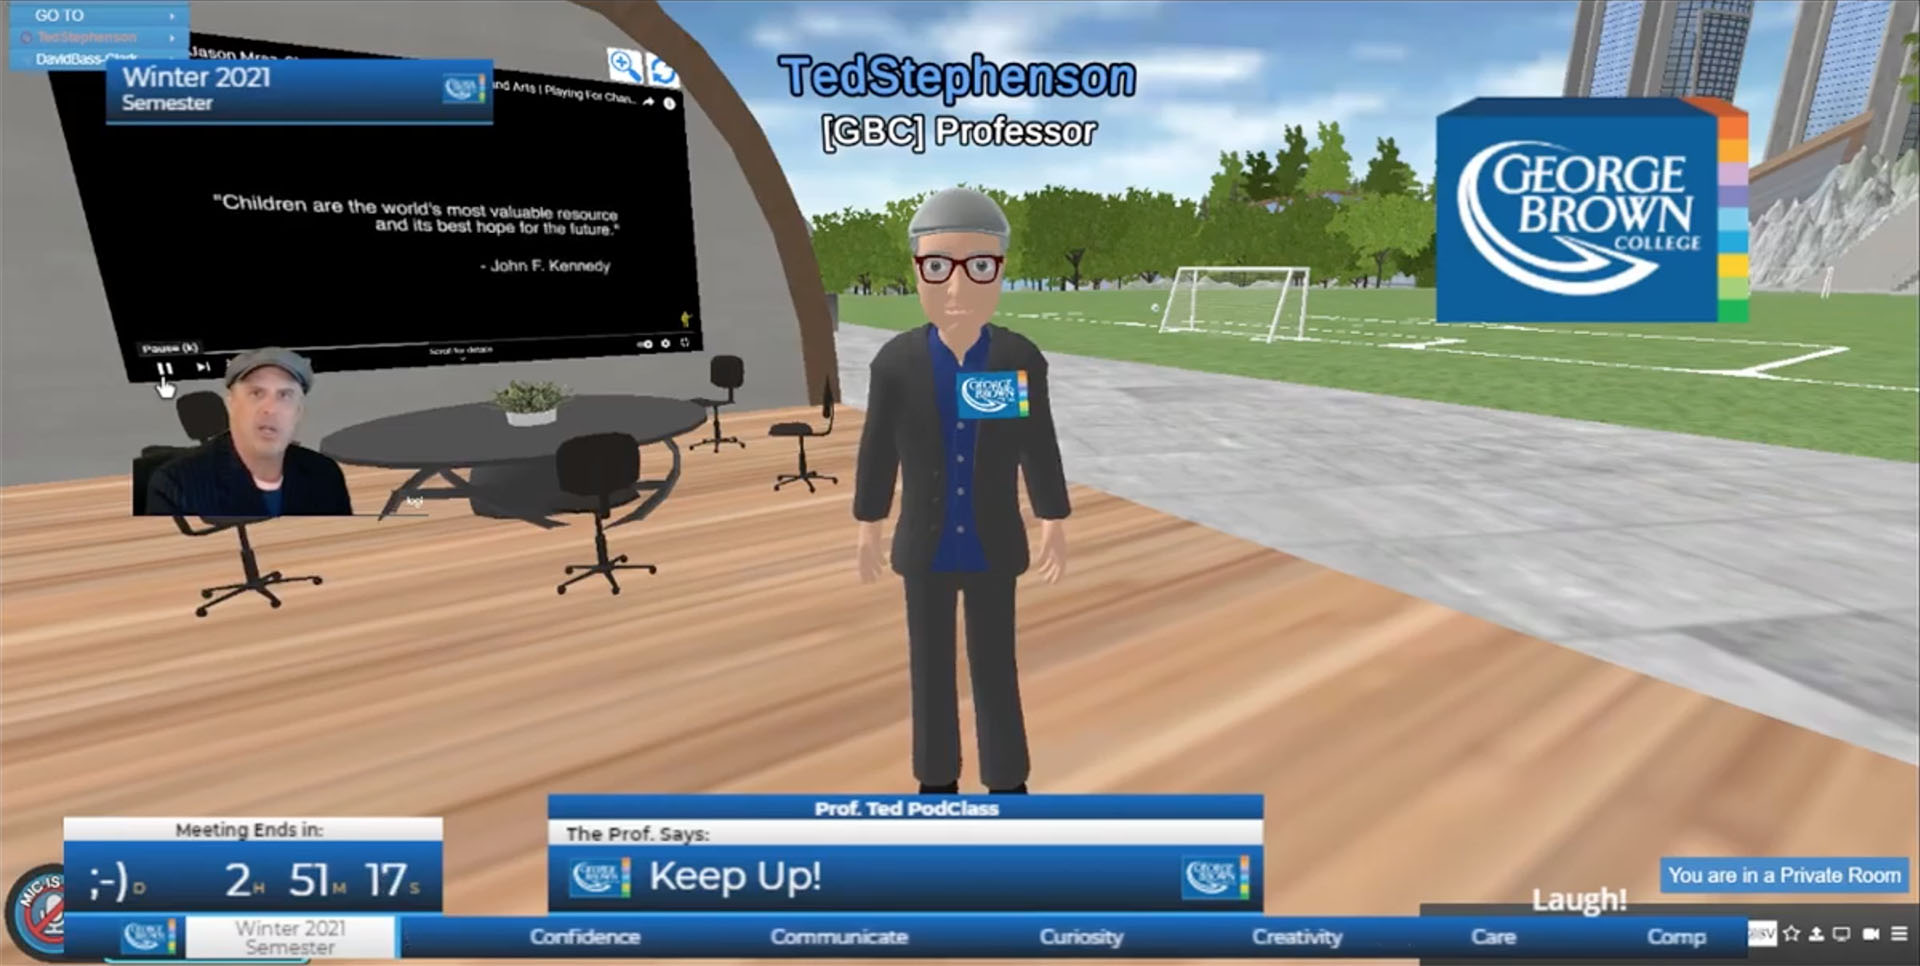 The Professor Ted Experience: A Virtual Classroom for Modern Teaching